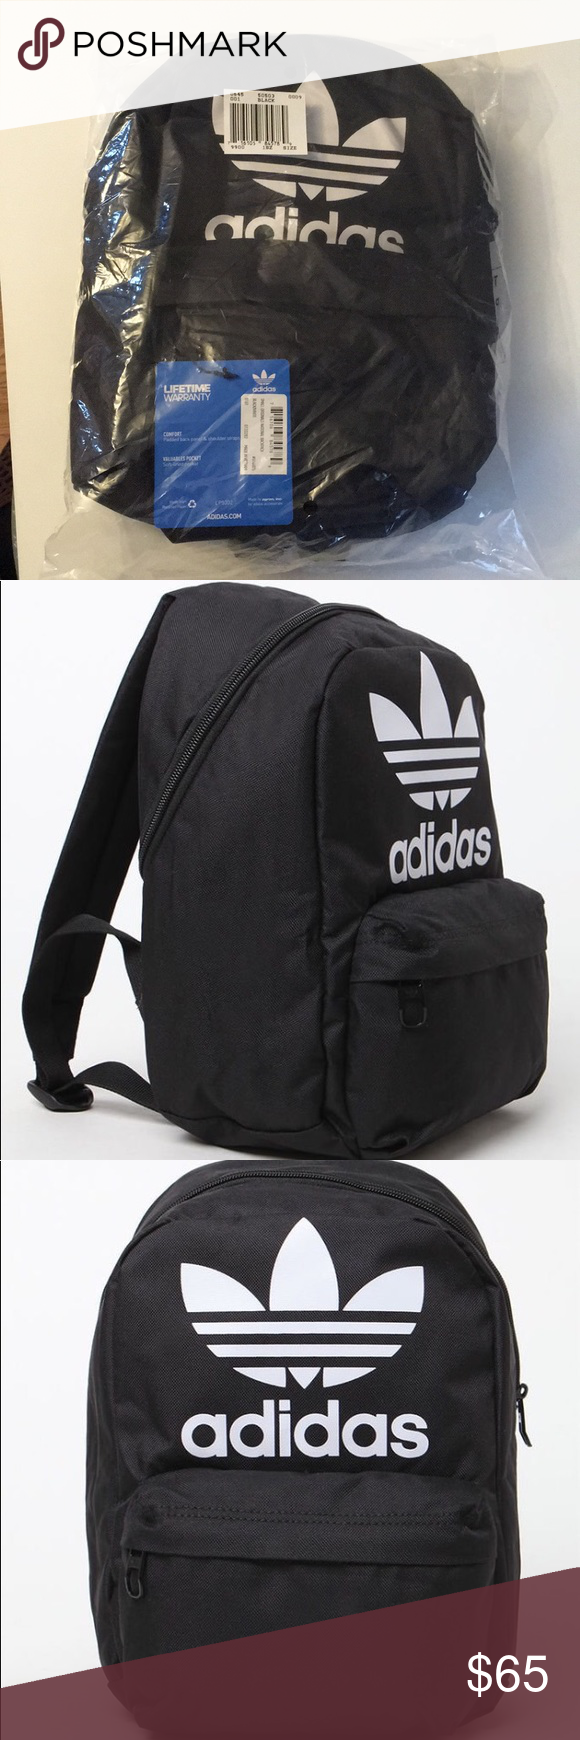 addb11145954 Adidas Originals trefoil backpack Brandnew with tag